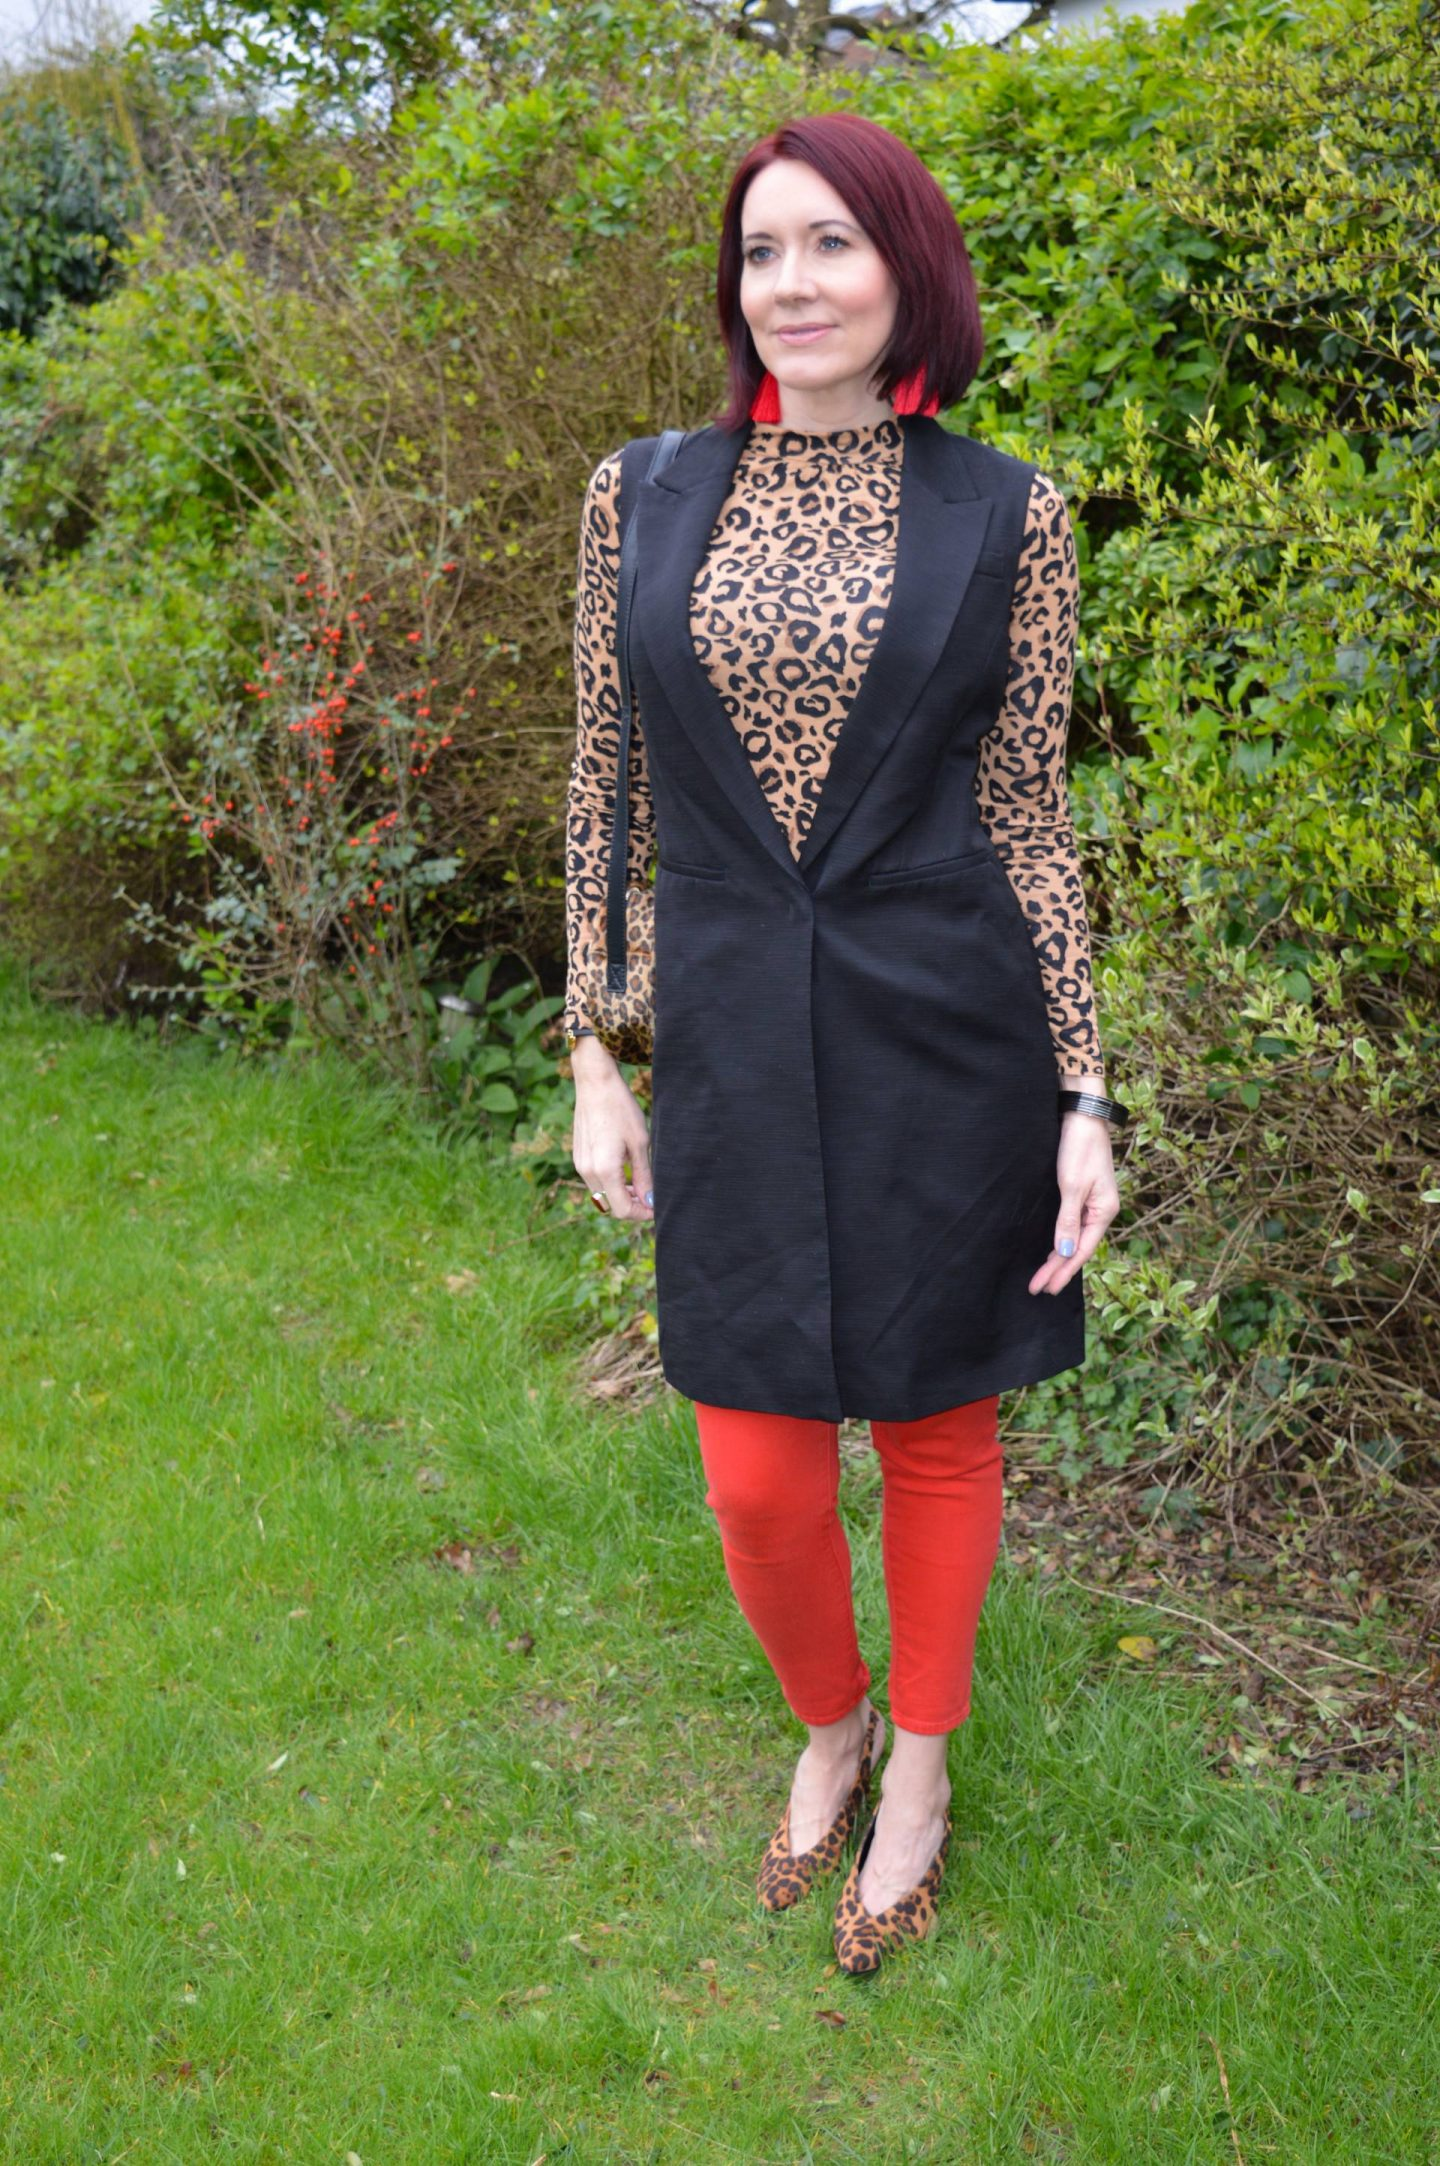 Coloured Denim For Spring - March Stylish Monday link up, Red Herring leopard print top, Skinny Dip leopard print bag, Dune leopard print sling back shoes, M&S black sleeveless trench coat